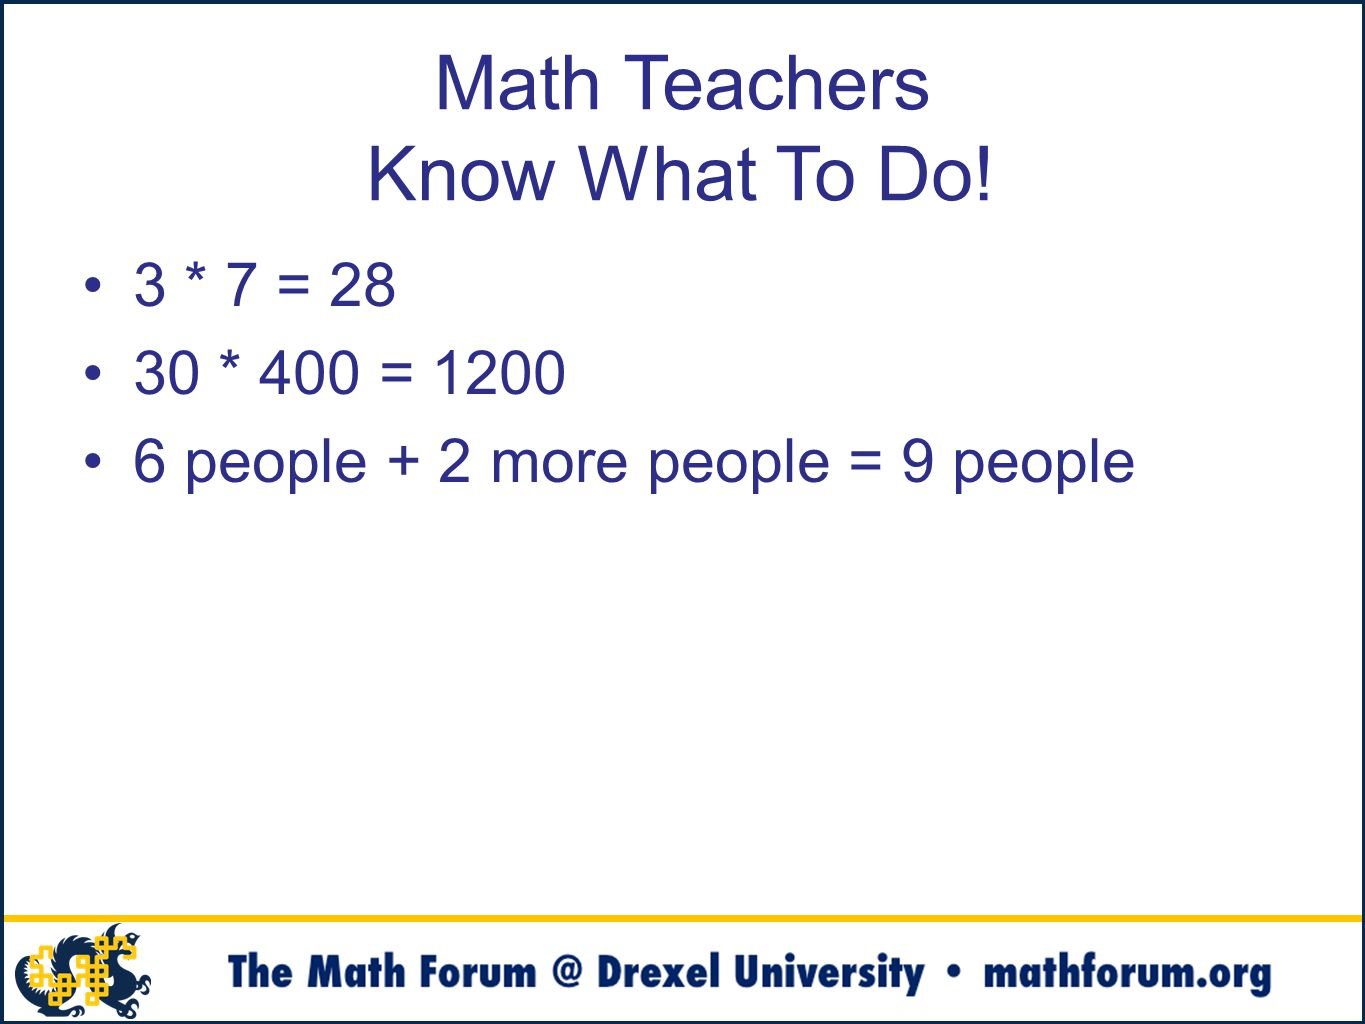 Math Teachers Know What To Do! 3 * 7 = 28 30 * 400 = 1200 6 people + 2 more people = 9 people